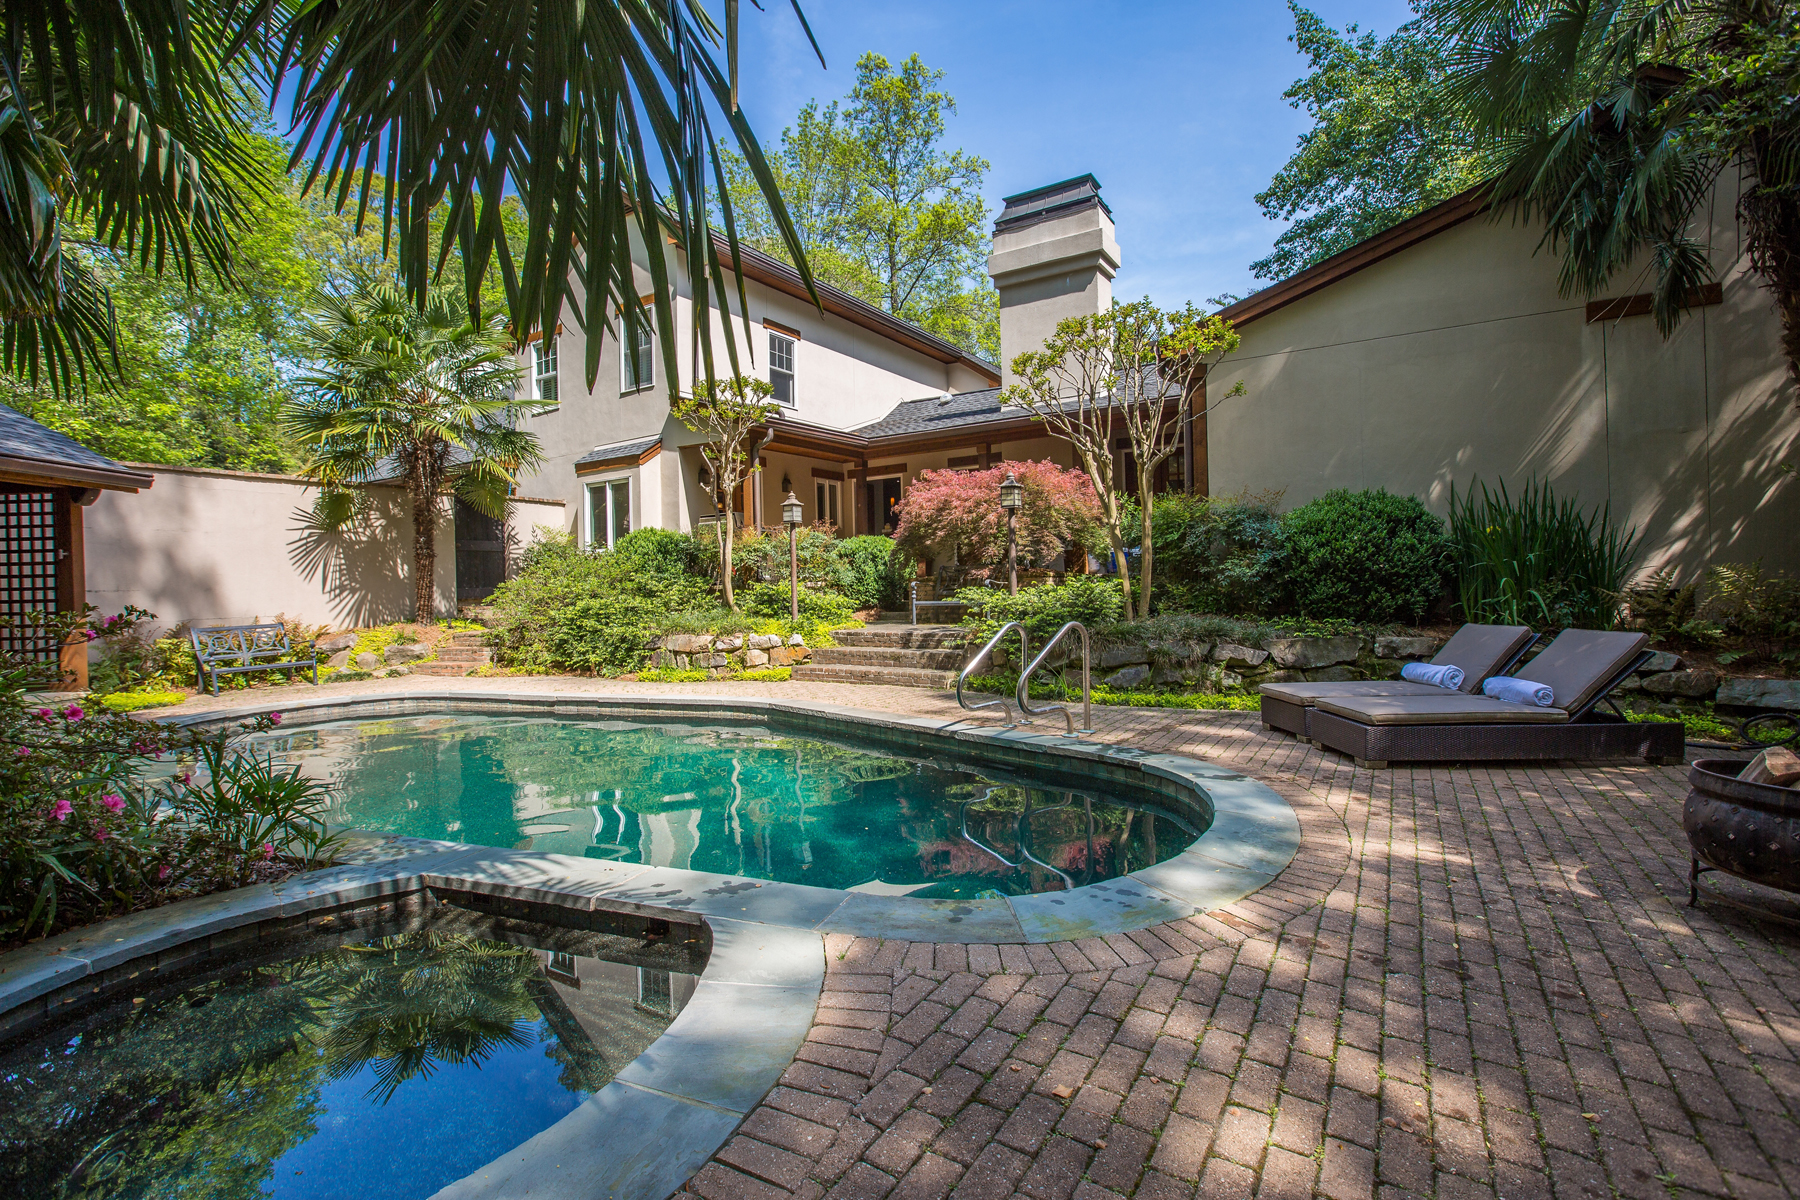 Single Family Home for Sale at Gorgeous Island-Inspired Home 4 Arden Moor NW Buckhead, Atlanta, Georgia, 30305 United States